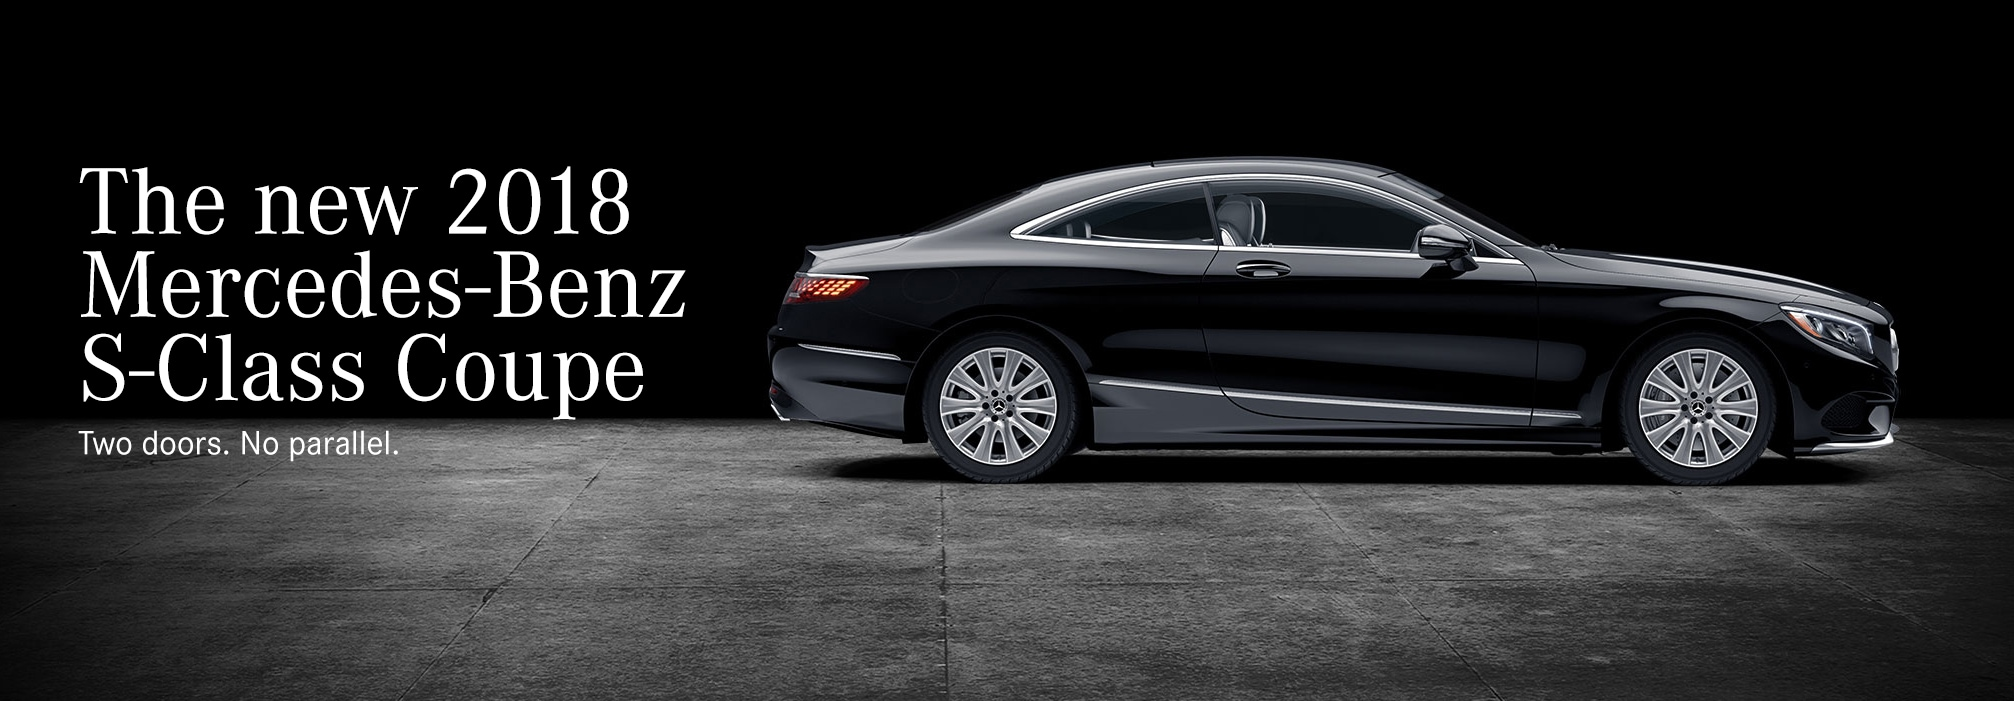 2018 mercedes benz s class coupe mercedes s class coupe for Mercedes benz of st charles